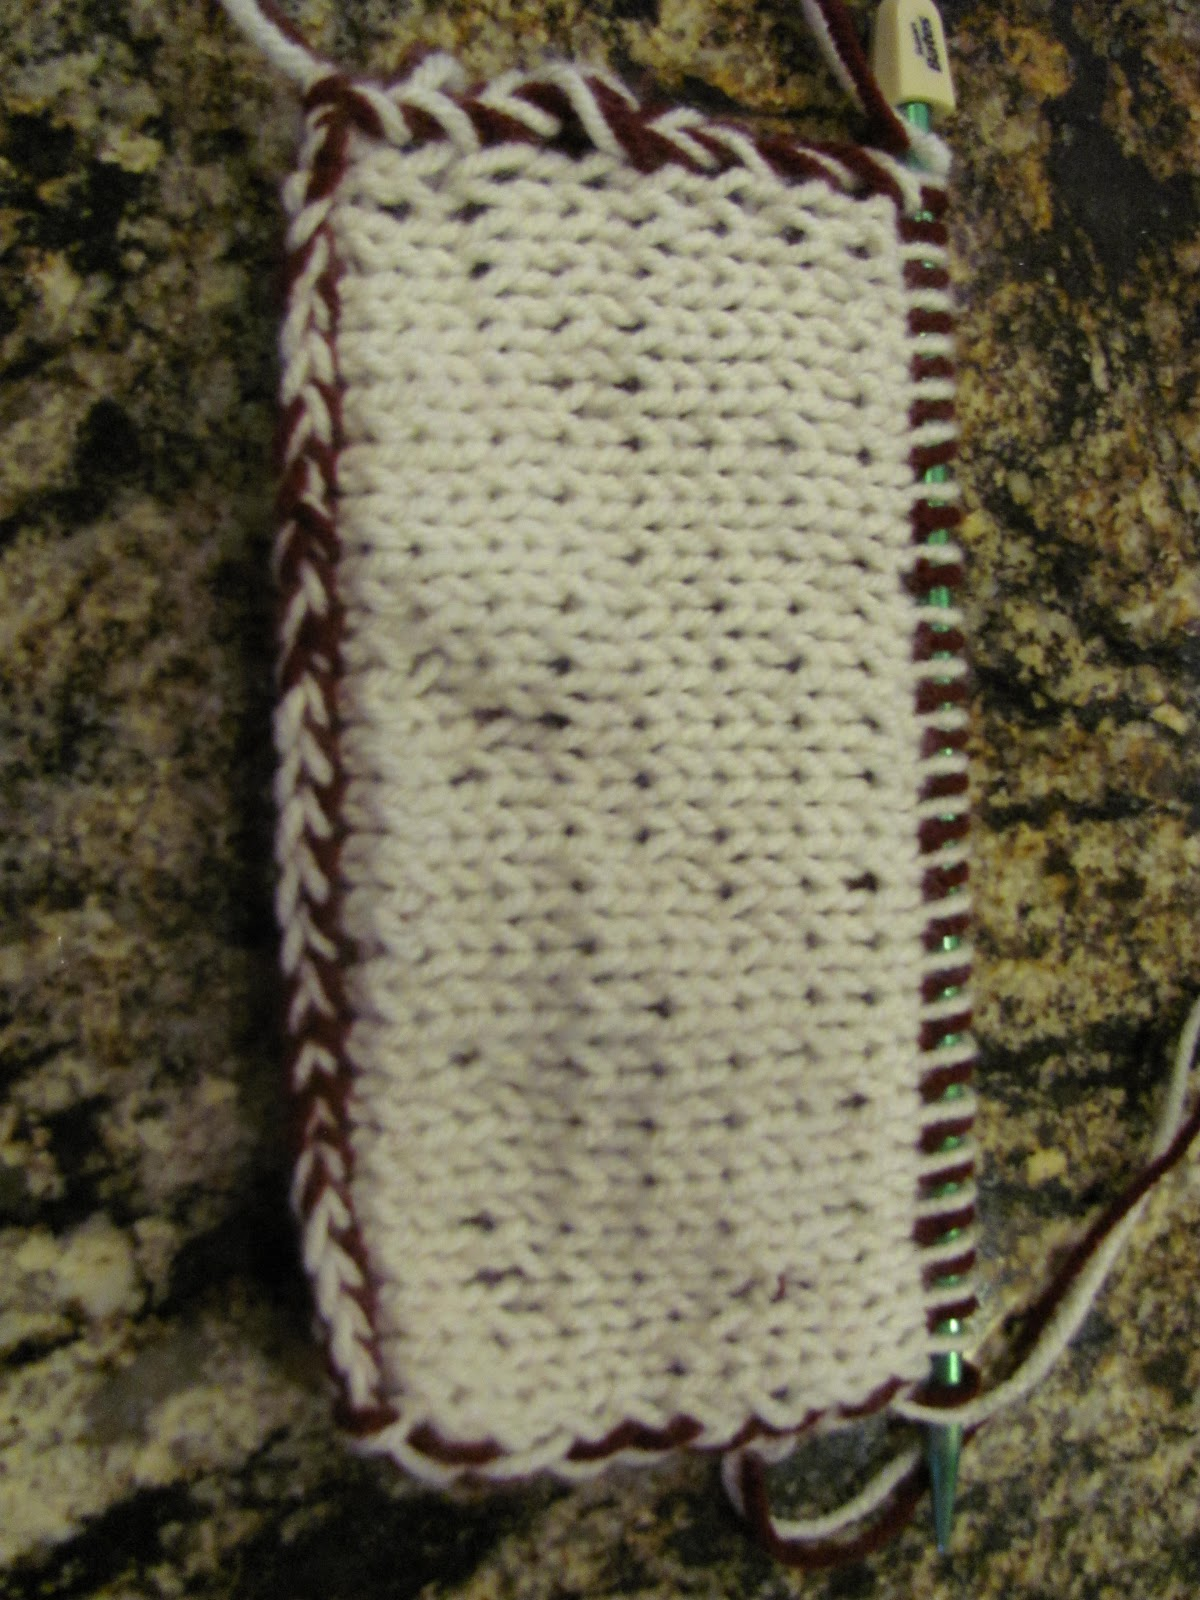 Knitting Basics Getting Started : Mosier farms double knitting reversible